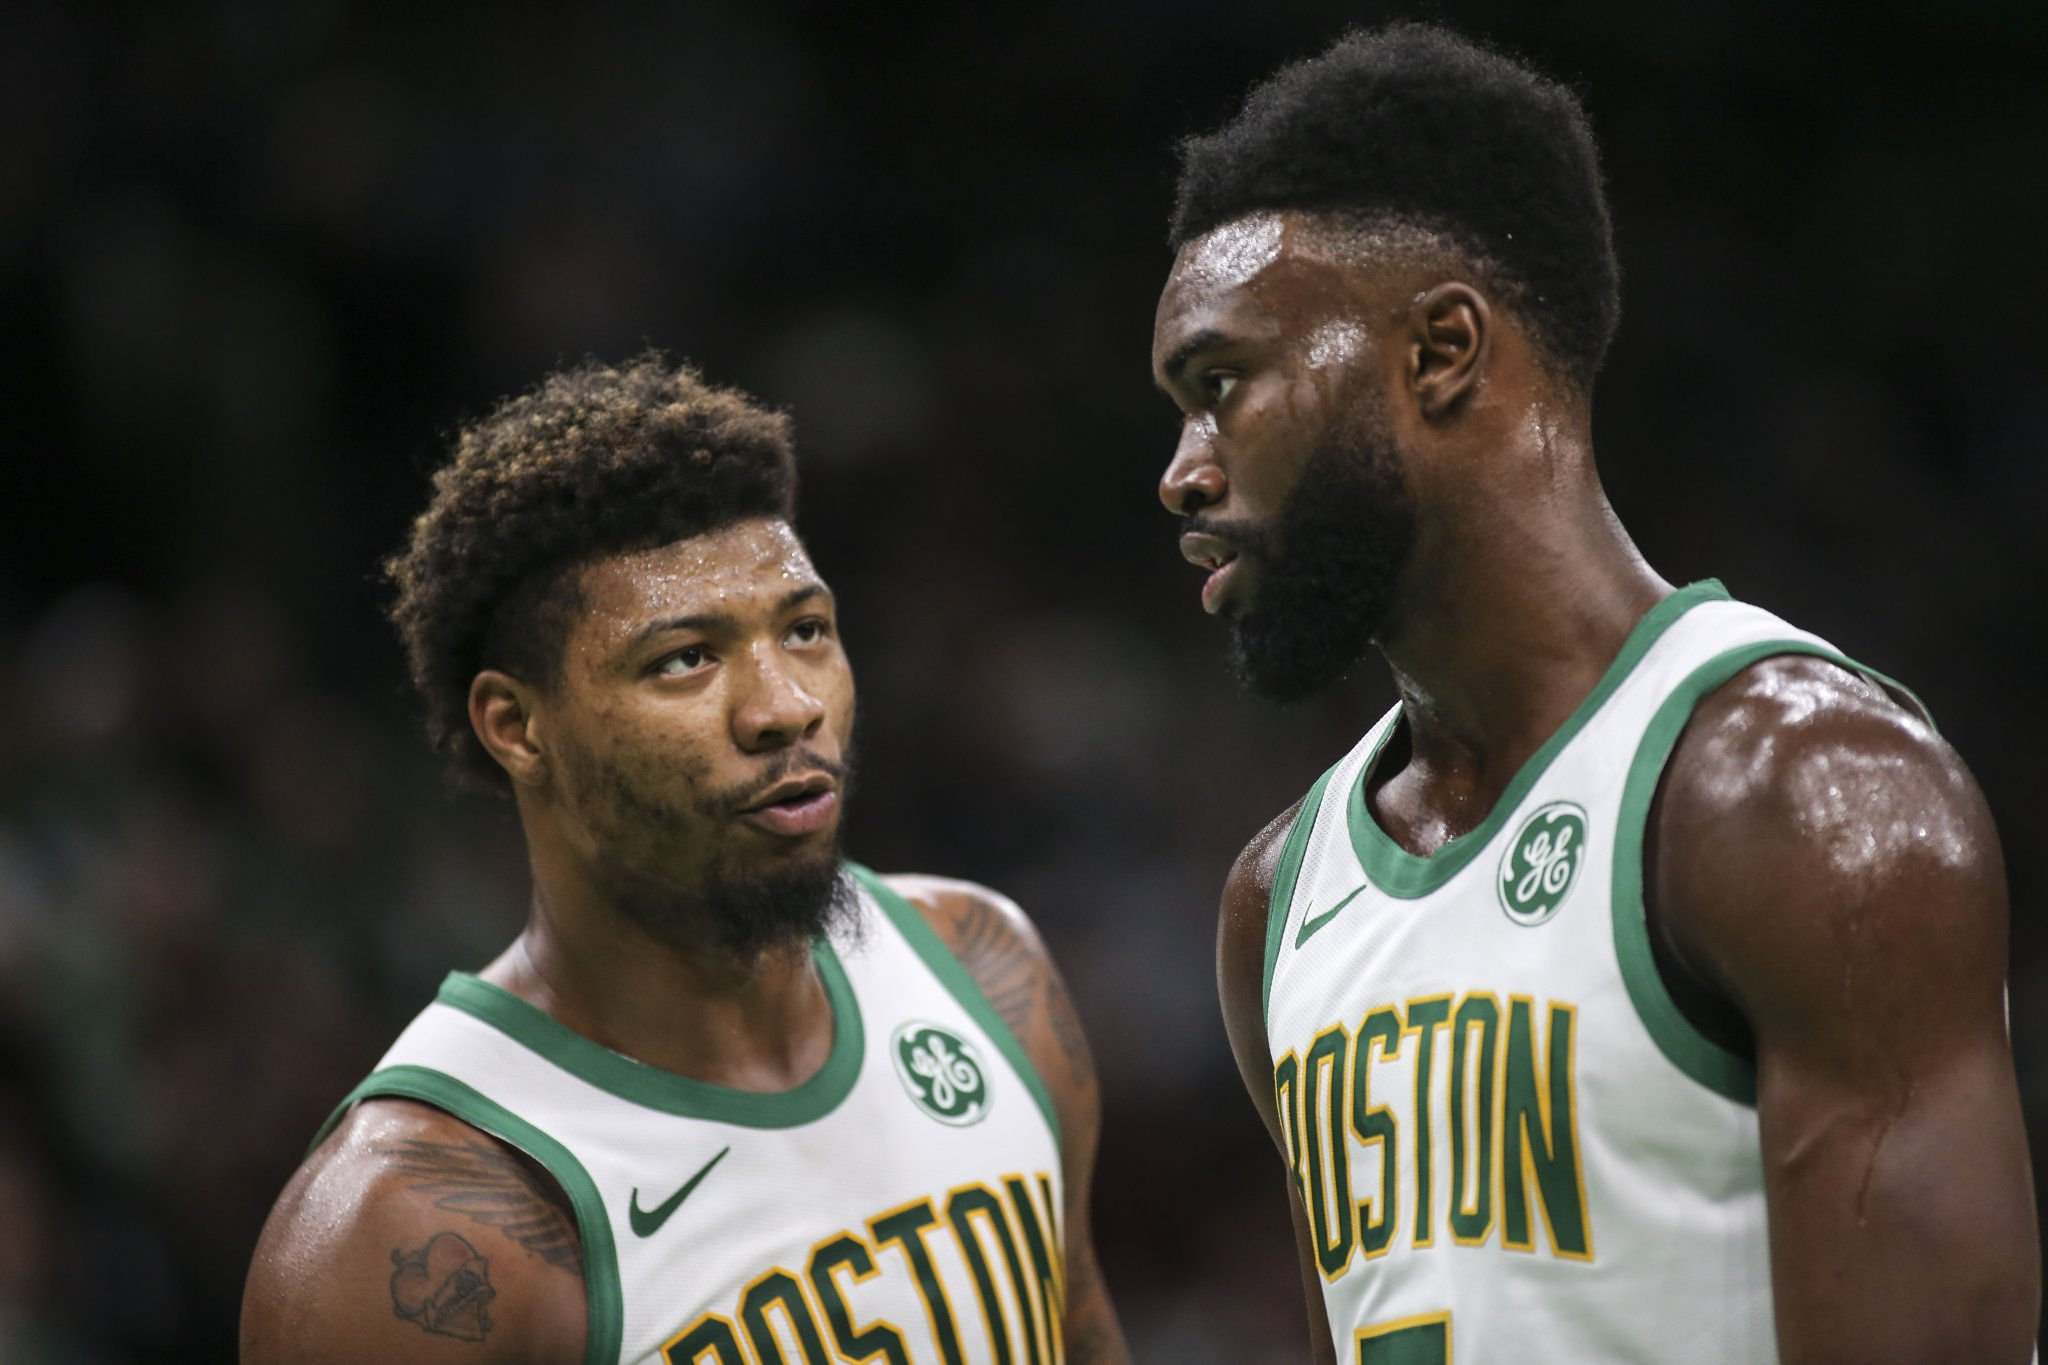 Celtics Teammates Marcus Smart And Jaylen Brown Reportedly Got Into Heated Confrontation And Had To Be Separated After Game 2 Loss To Miami Heat - BroBible